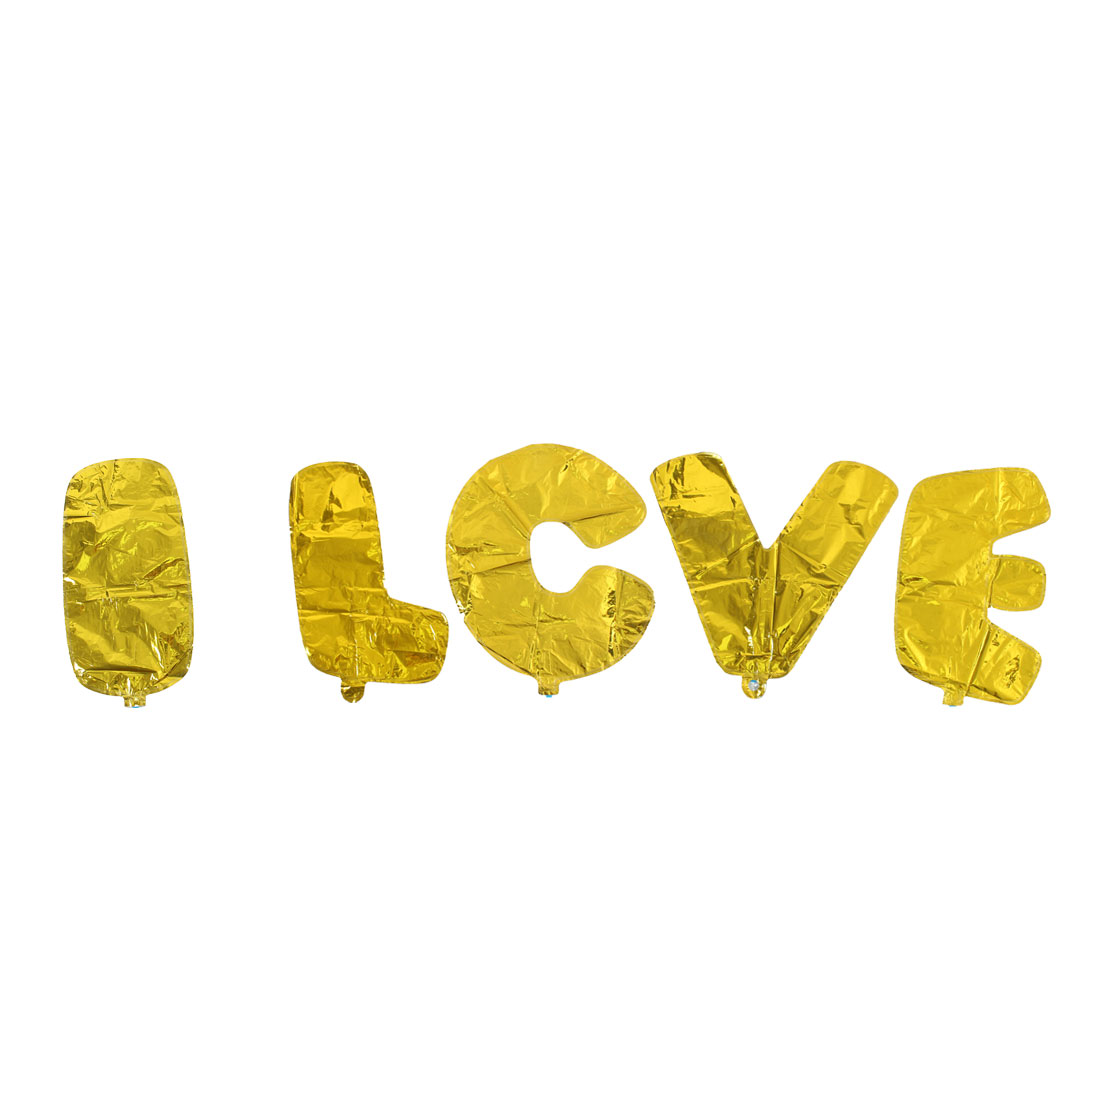 Foil I LOVE YOU Balloon Wedding Party Celebration Decor Gold Tone 8 in 1 - image 2 of 4